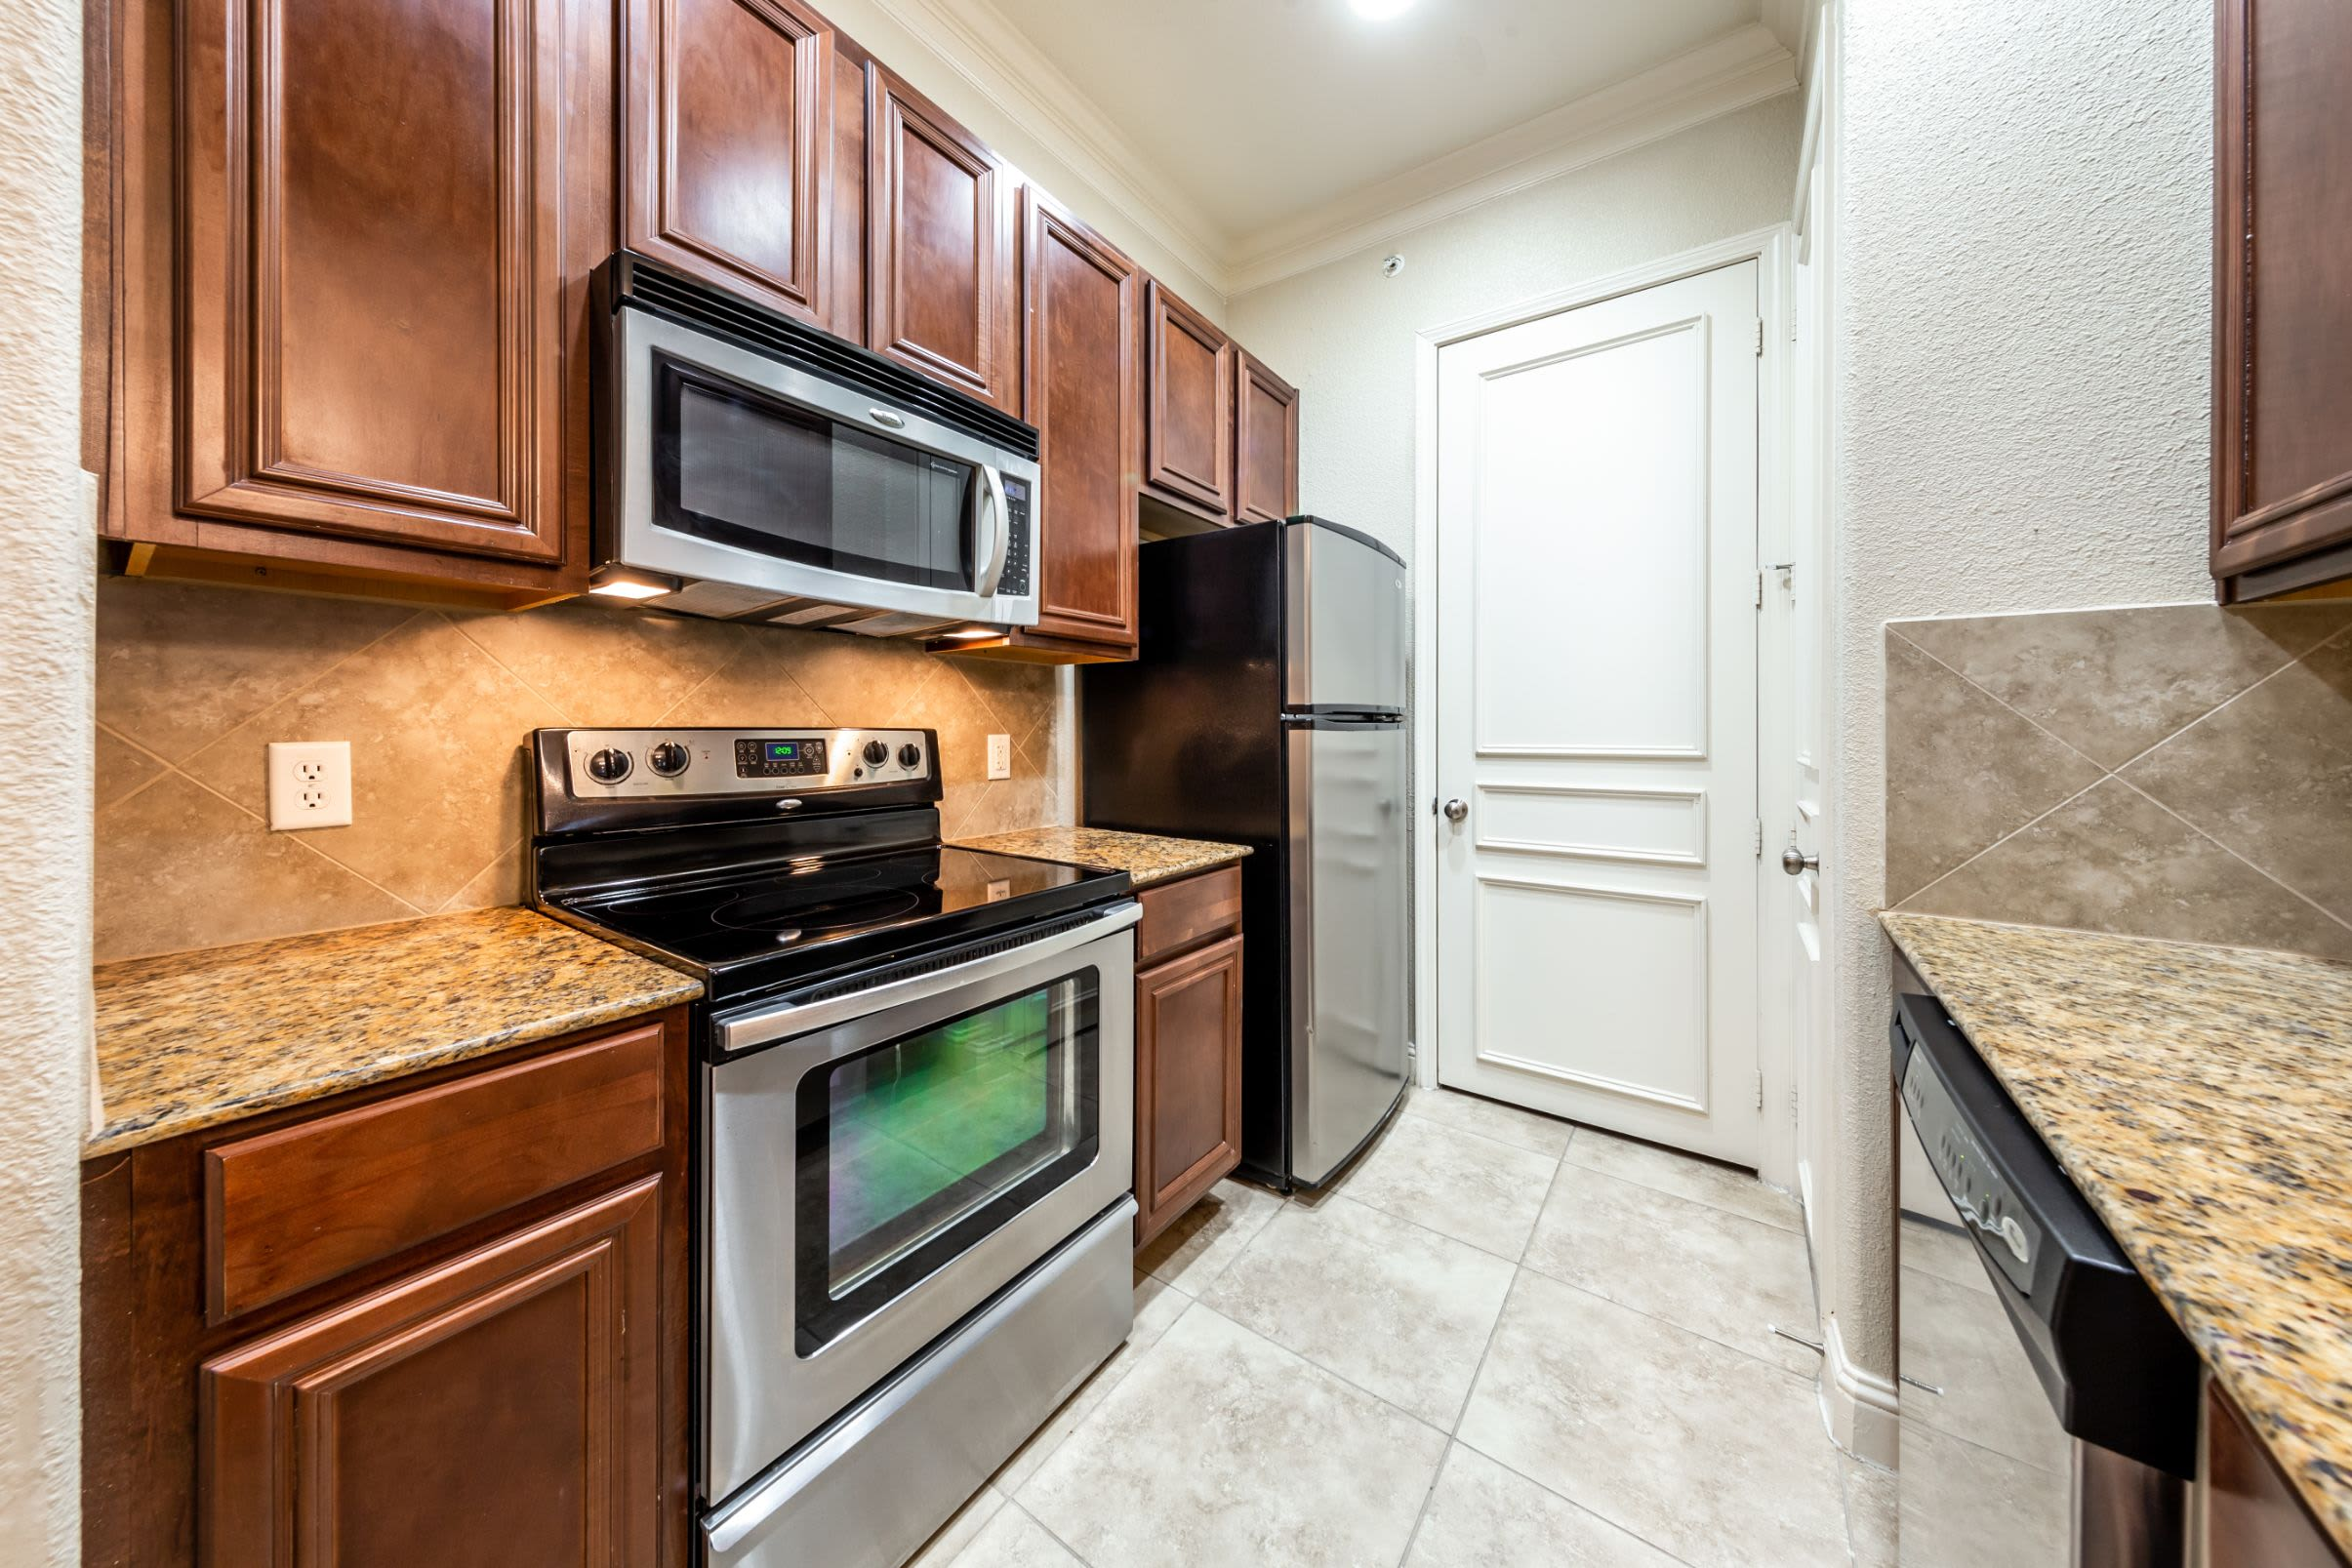 Kitchen with granite style countertops at Marquis at TPC in San Antonio, Texas